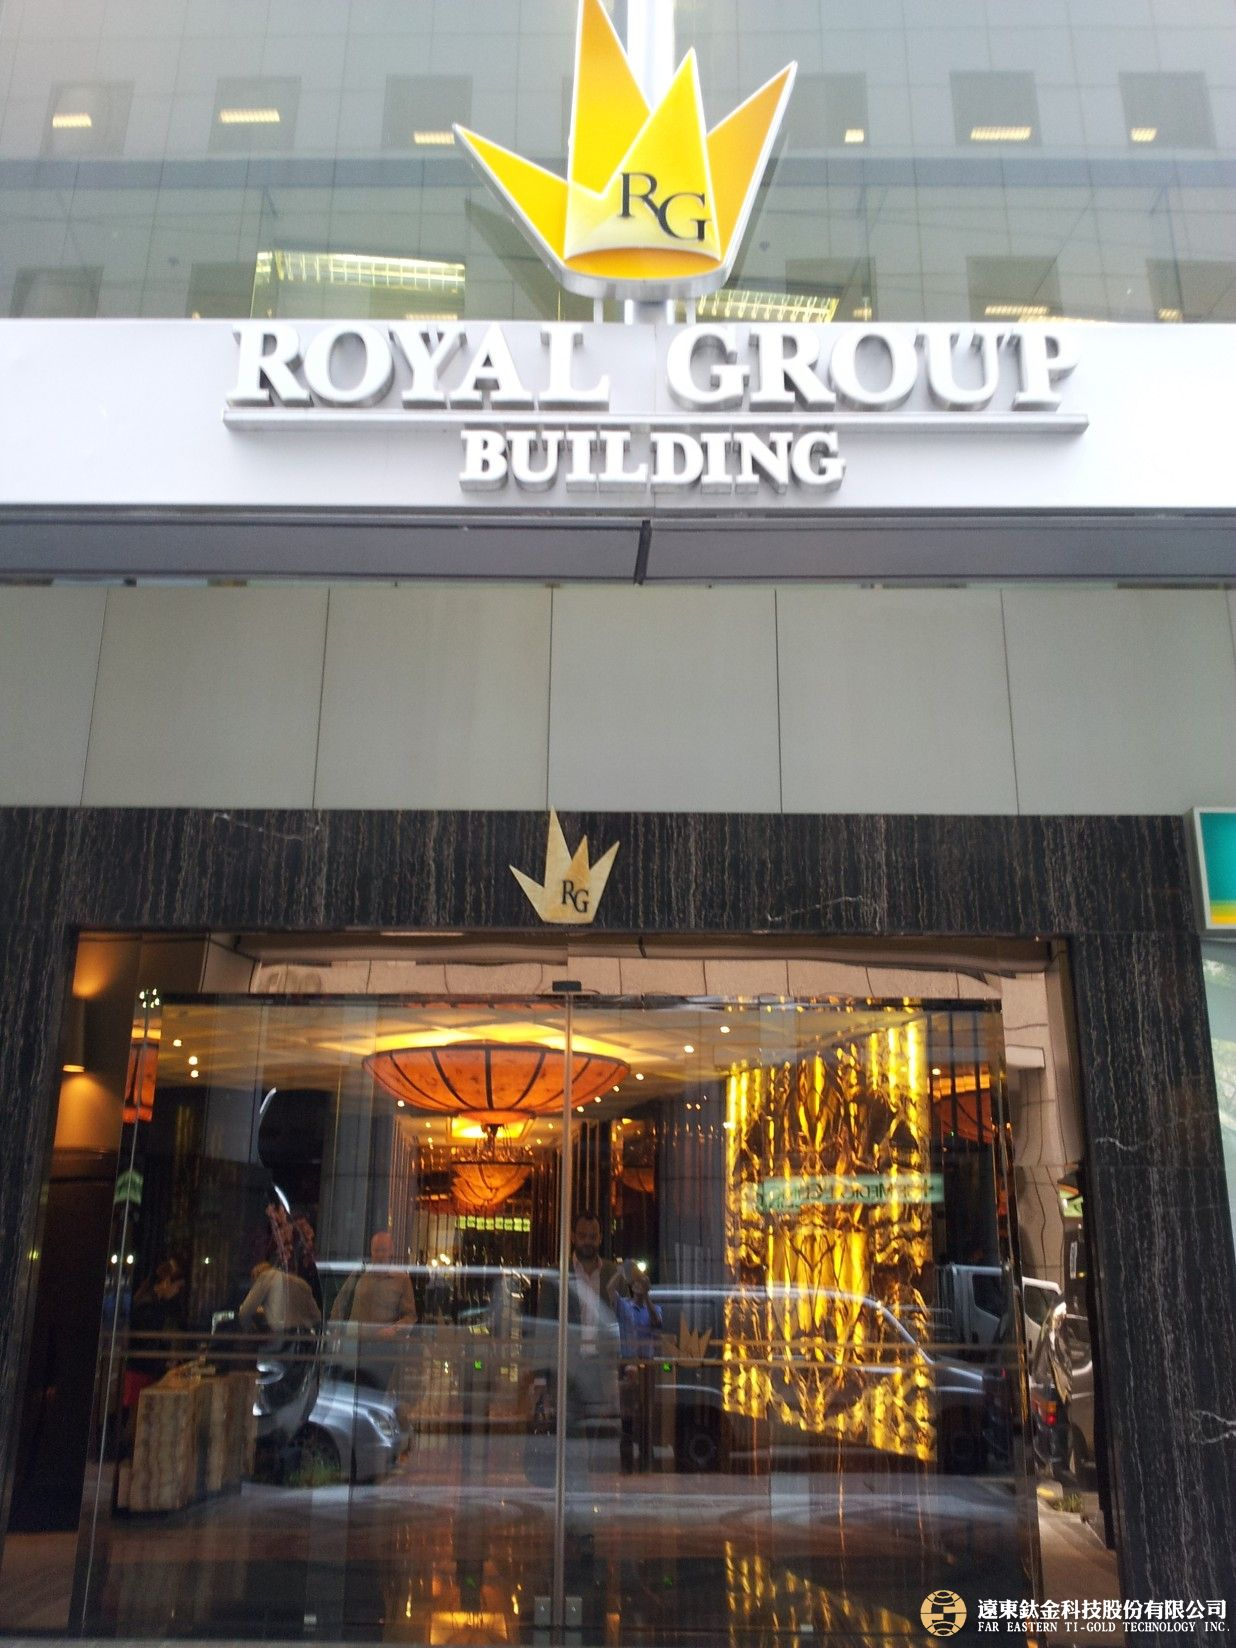 ROYAL GROUP BUILDING